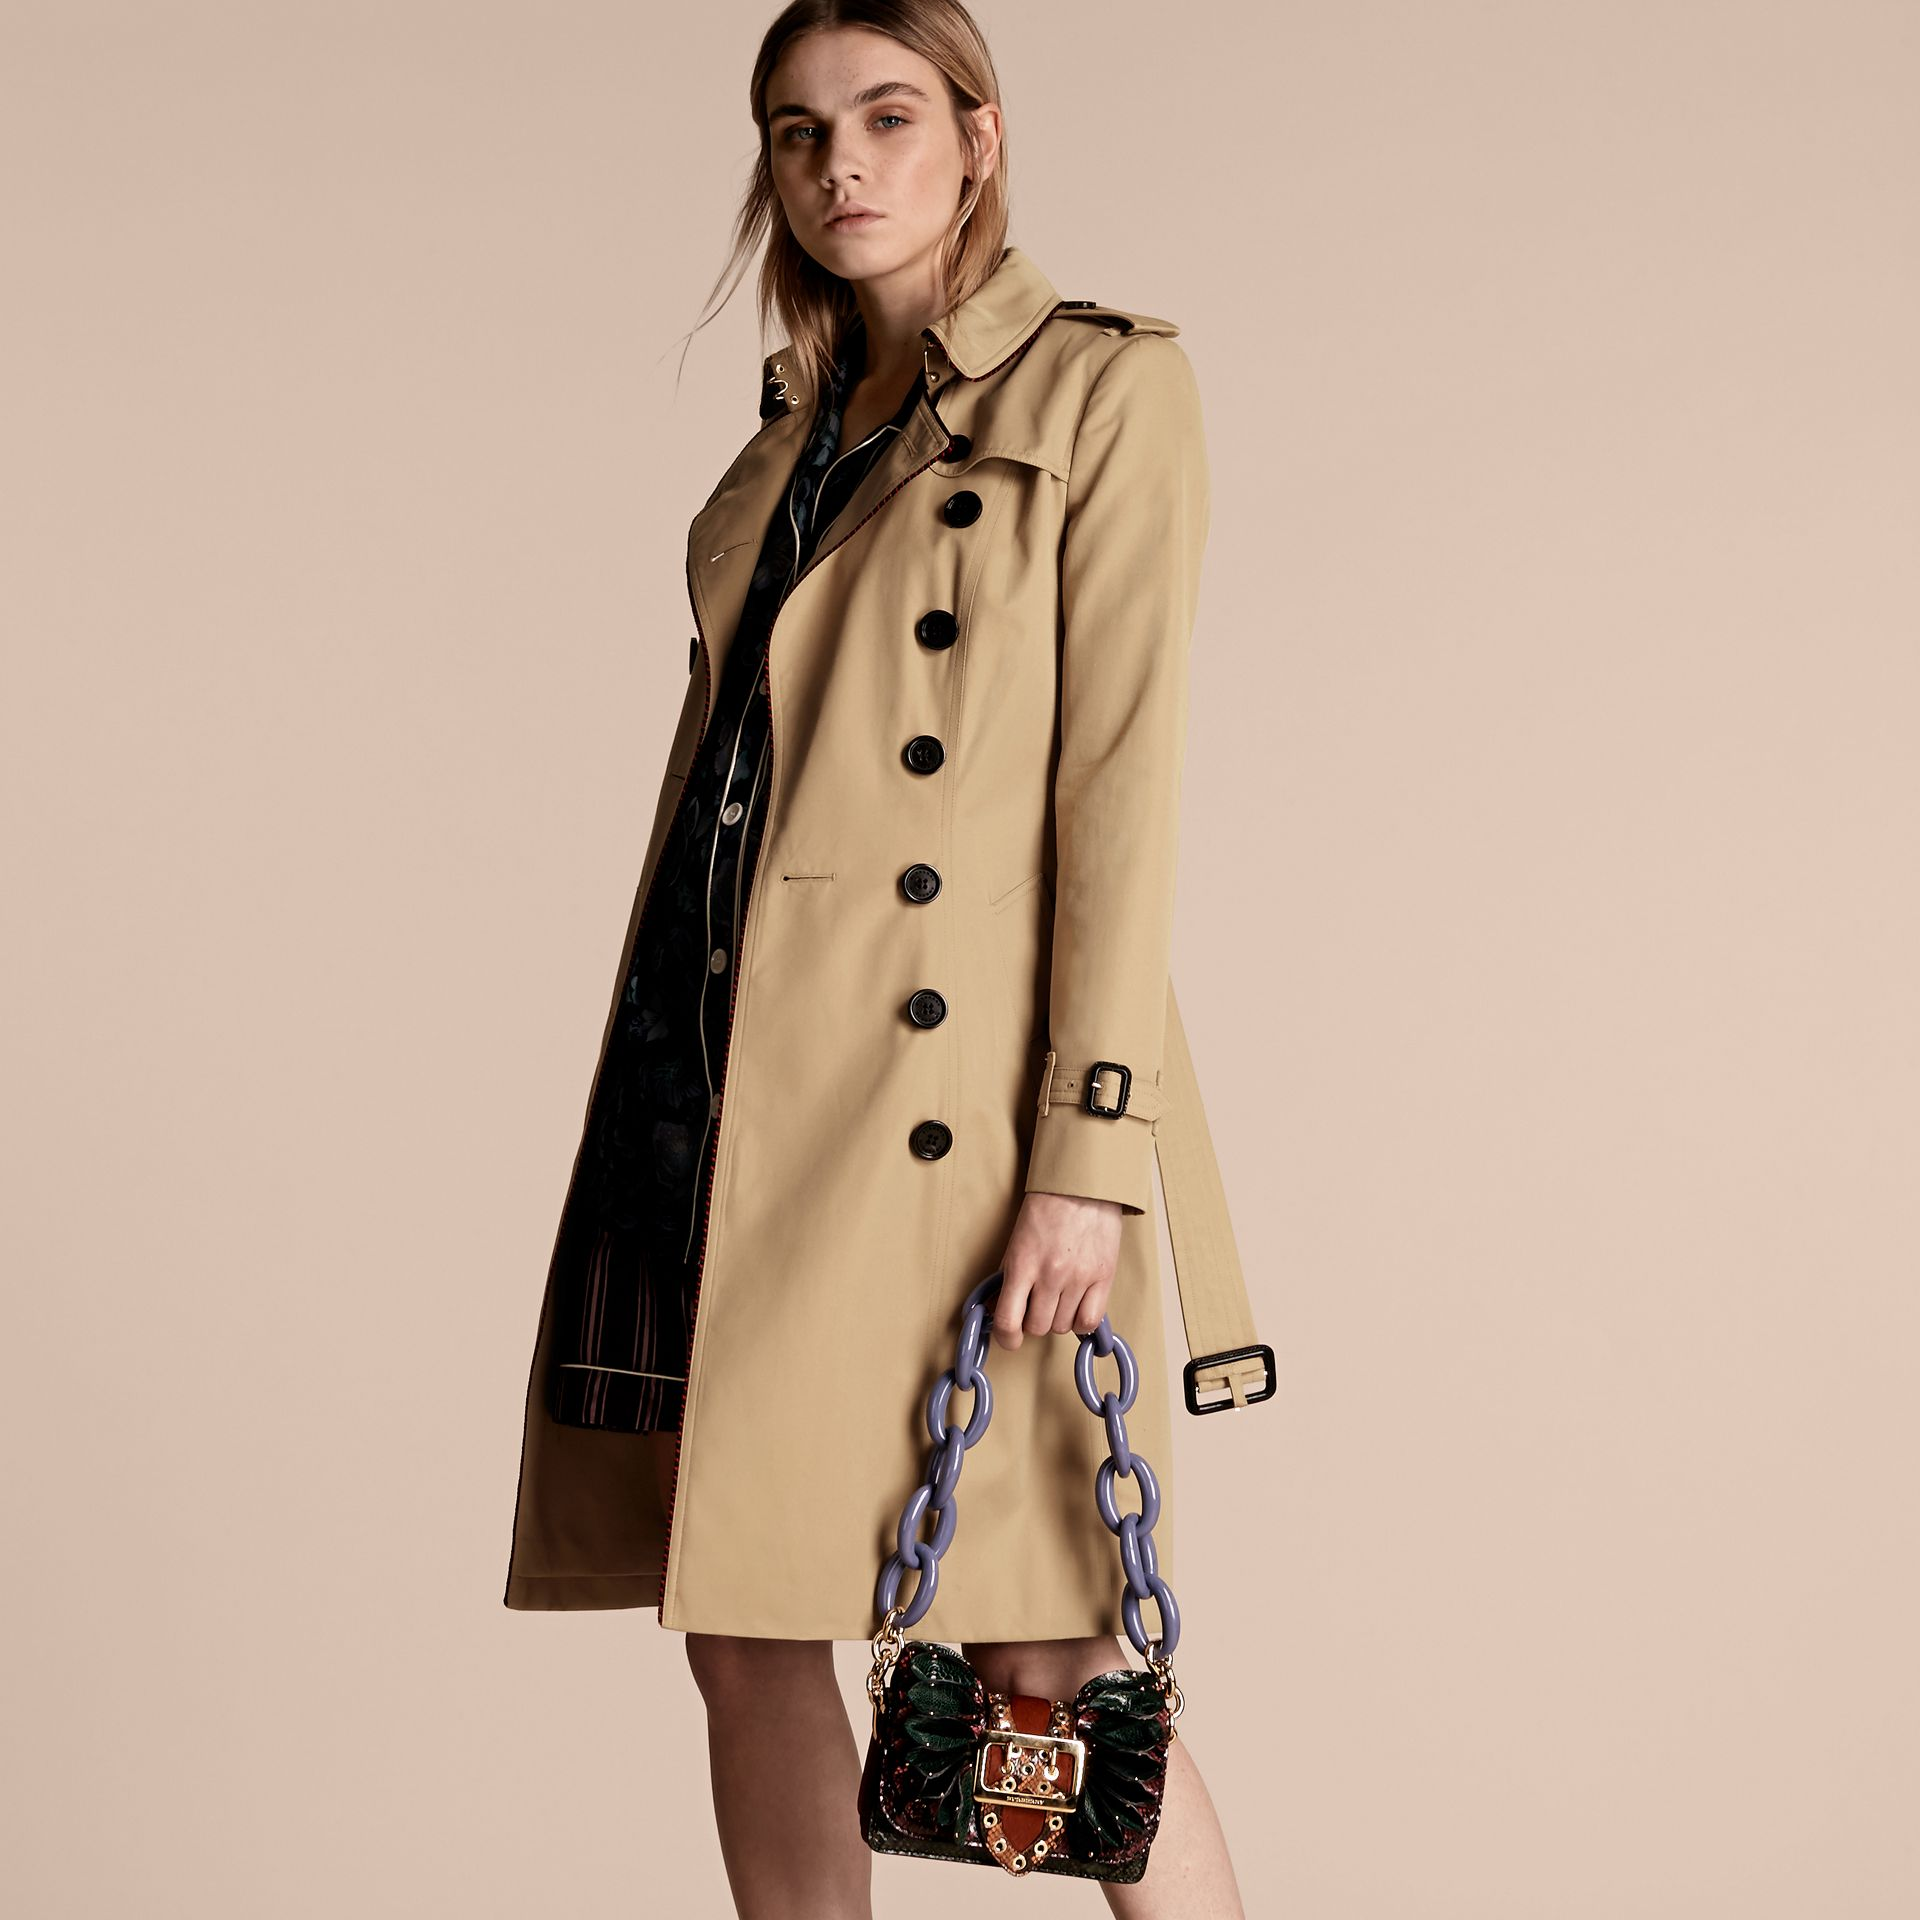 Cotton Gabardine Trench Coat with Regimental Piping - gallery image 8